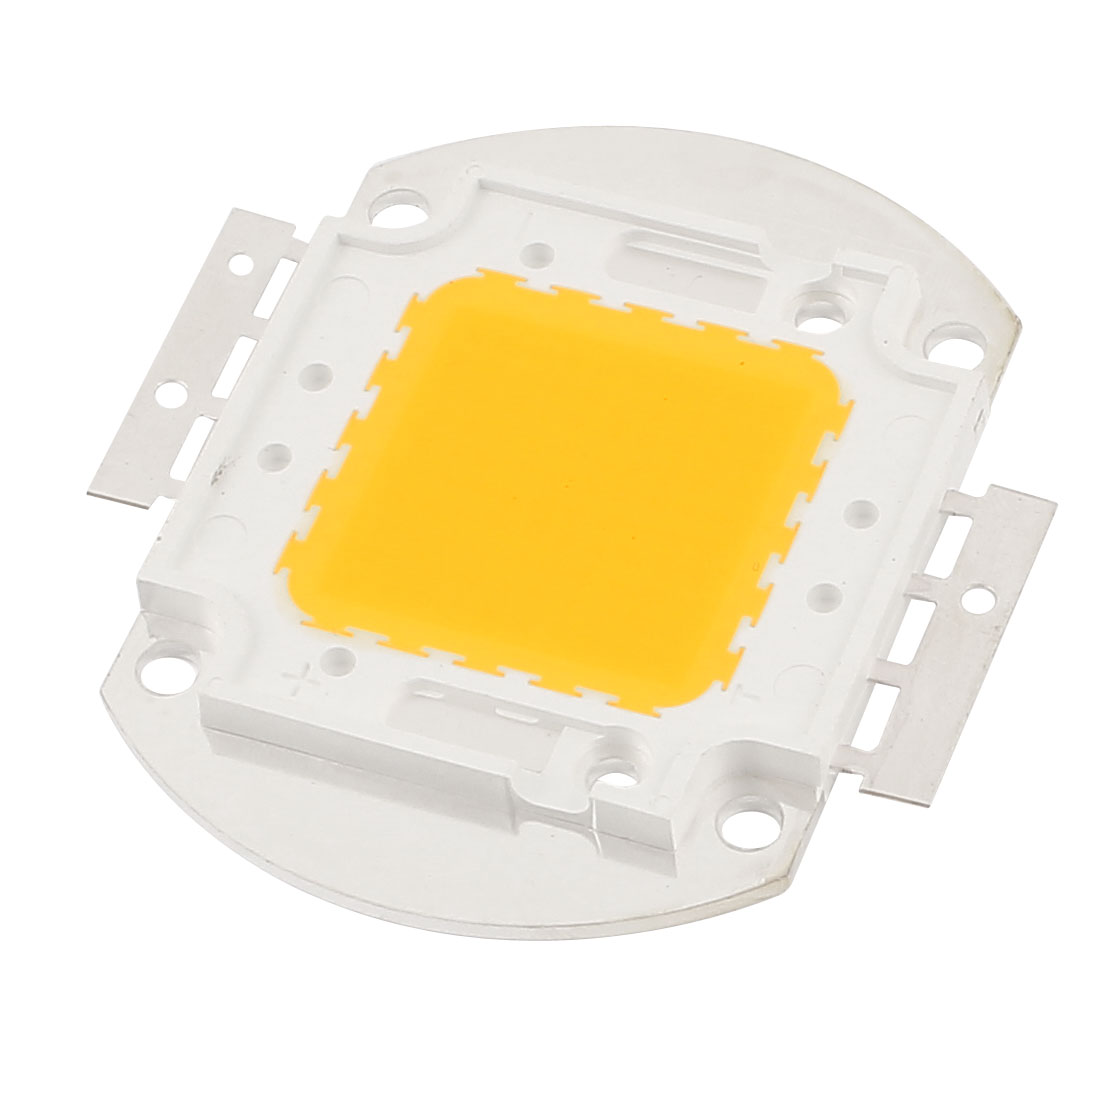 100W DC30-36V 3A 80-100LM/W Warm White LED Light COB Lamp Bead Chip